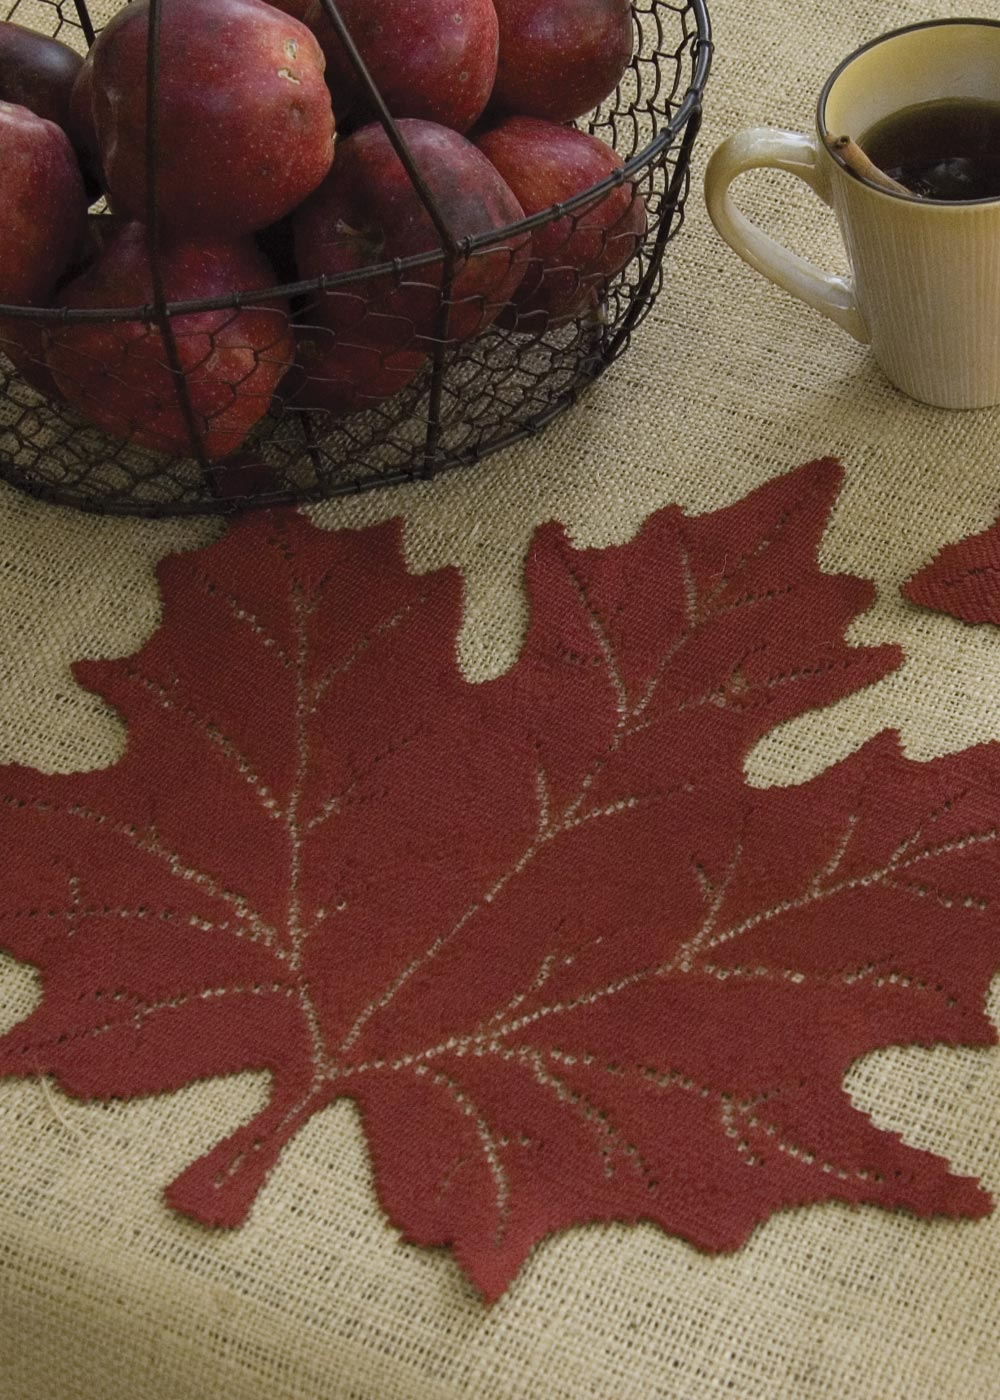 Lace Placemat Doily Set Maple Fall Table Linens From Leaf Collection Made In Usa Heritage Lace